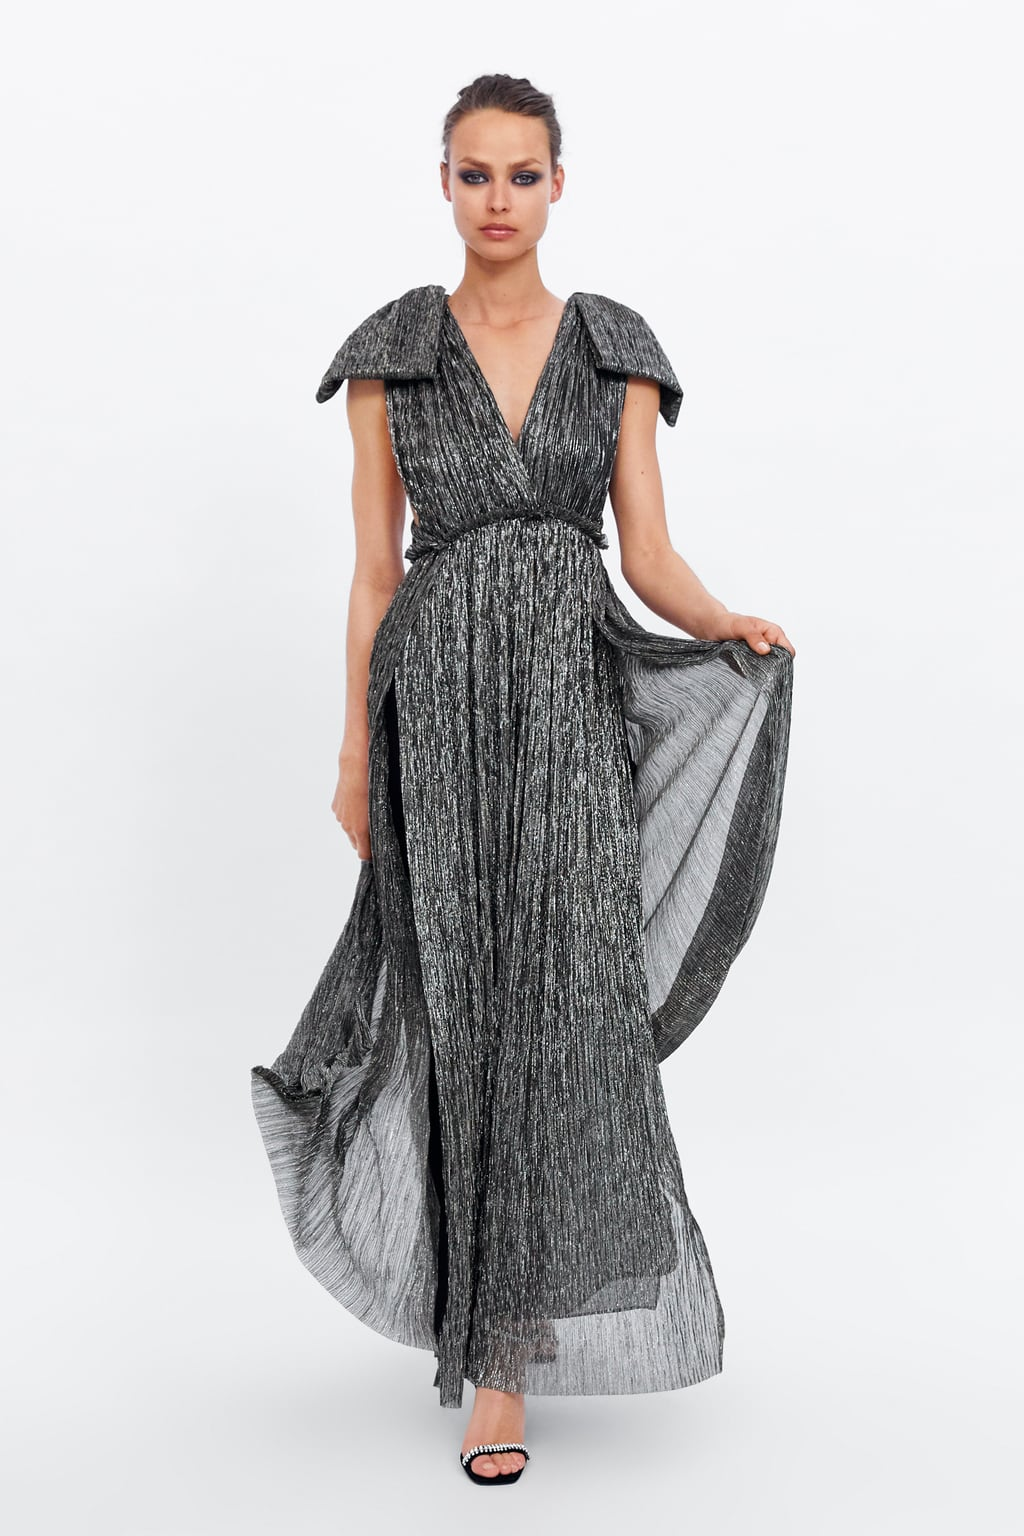 SILVER METALLIC THREAD DRESS - 149.00 GBP